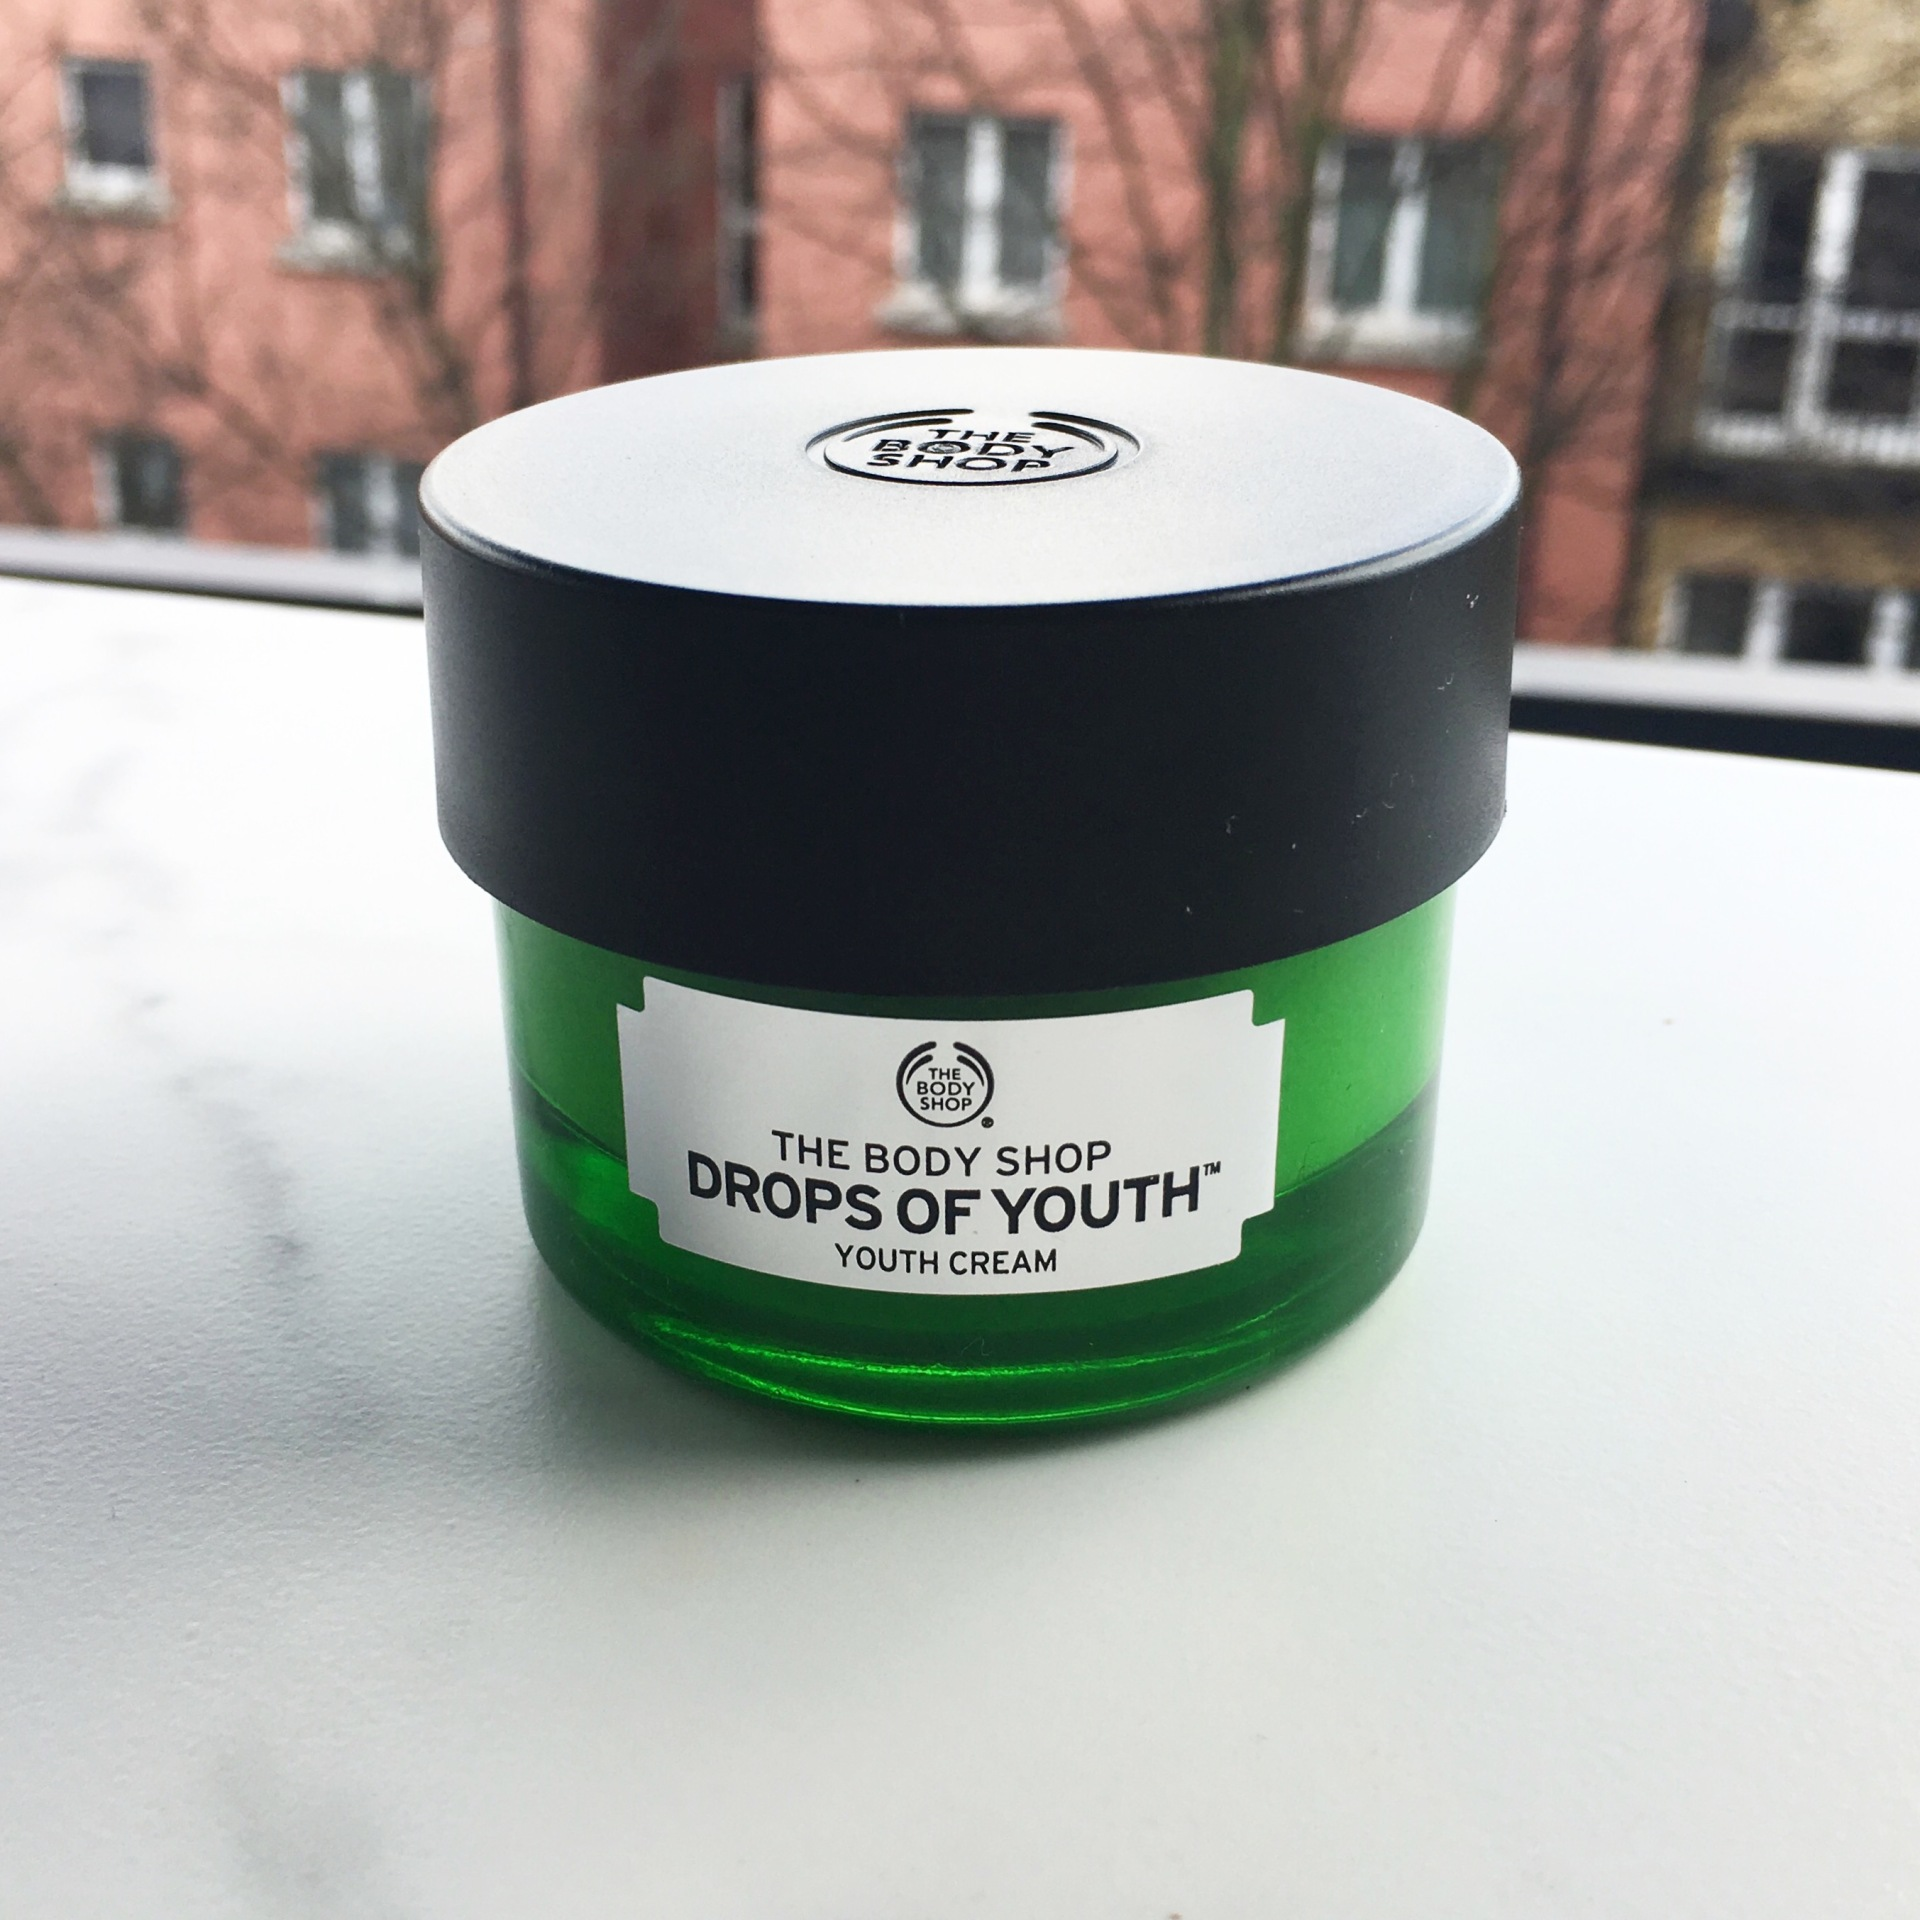 Drops of Youth cream body shop